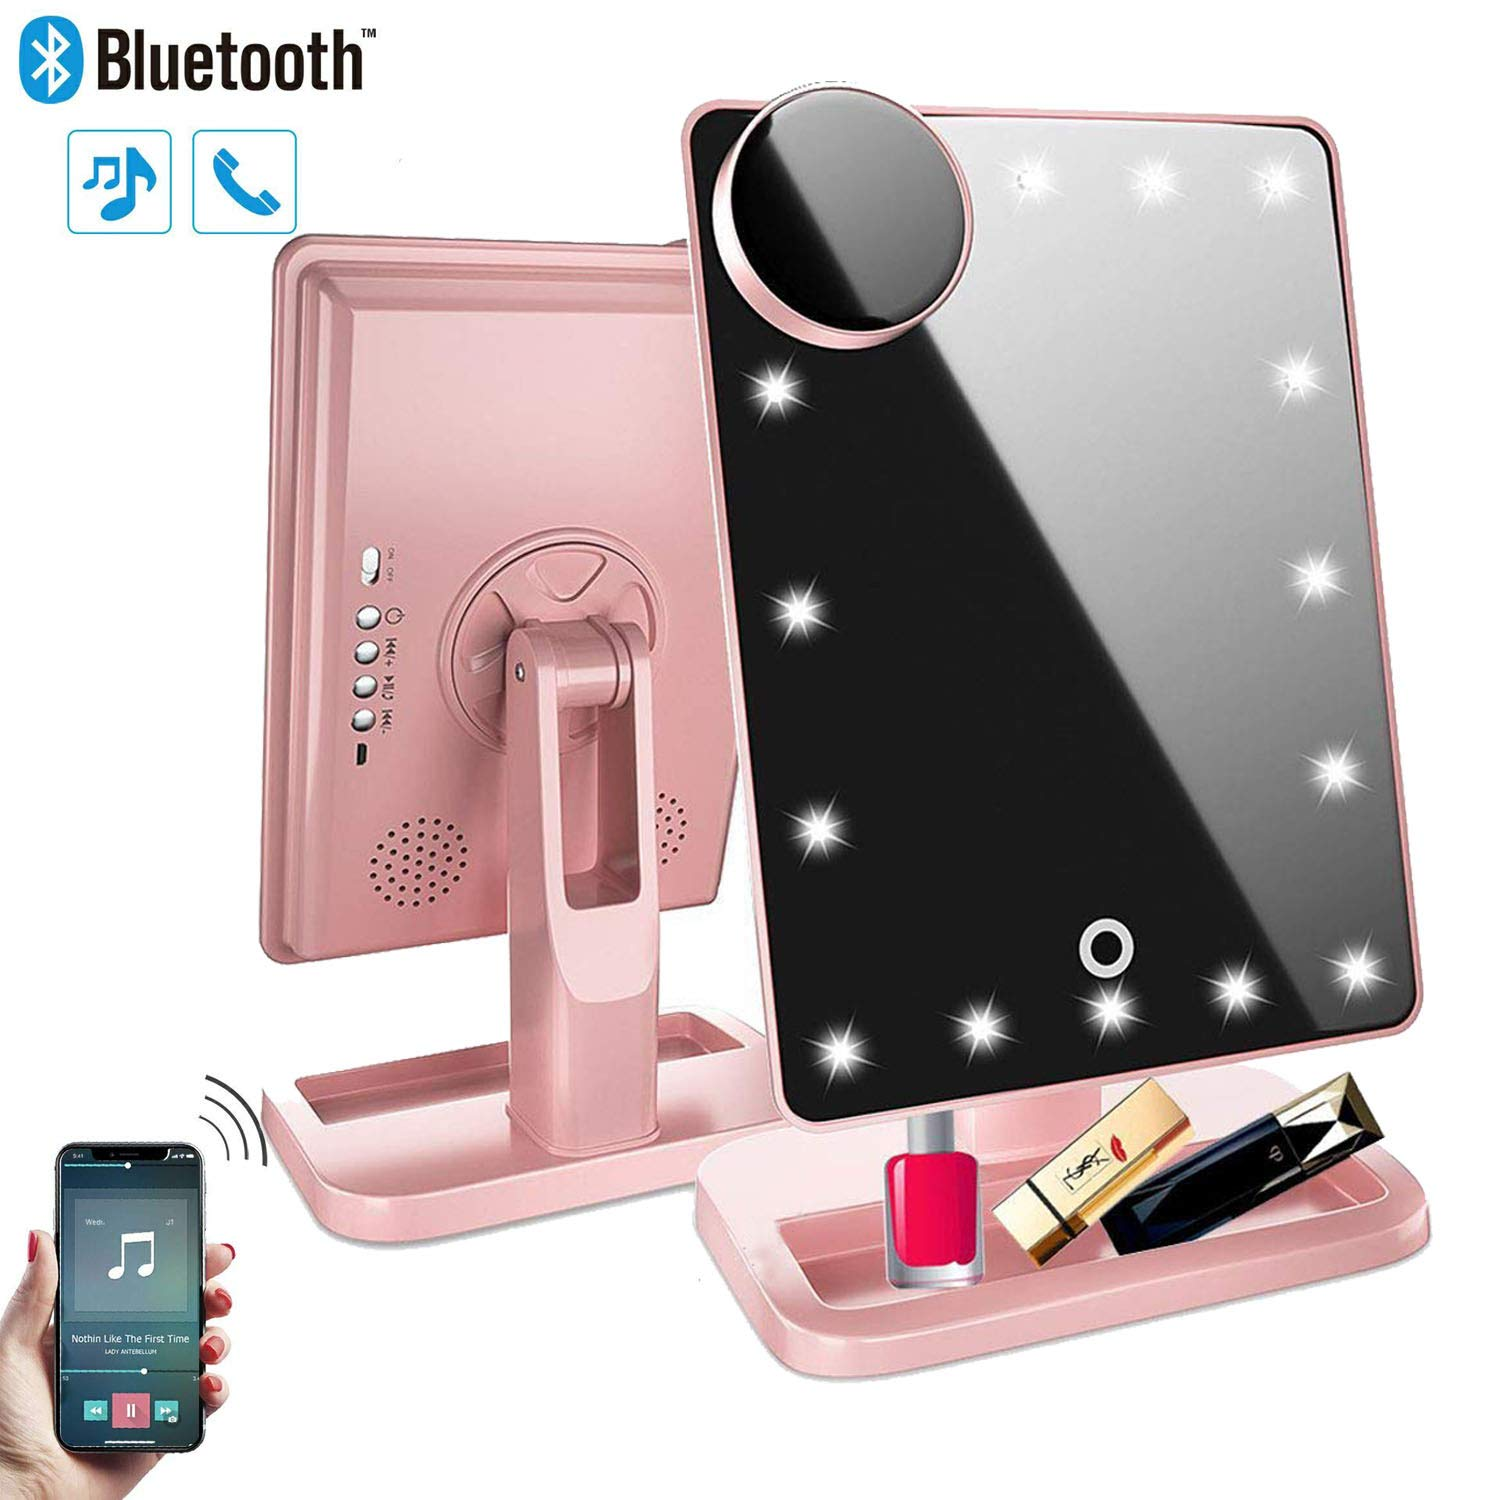 Makeup Mirror with Lights and Bluetooth,Vanity Mirror with 20 LED, Adjustable Brightness, Detachable 10x Magnification,Girl Lighted Up Cosmetic Mirror, Rechargeable Rose Gold